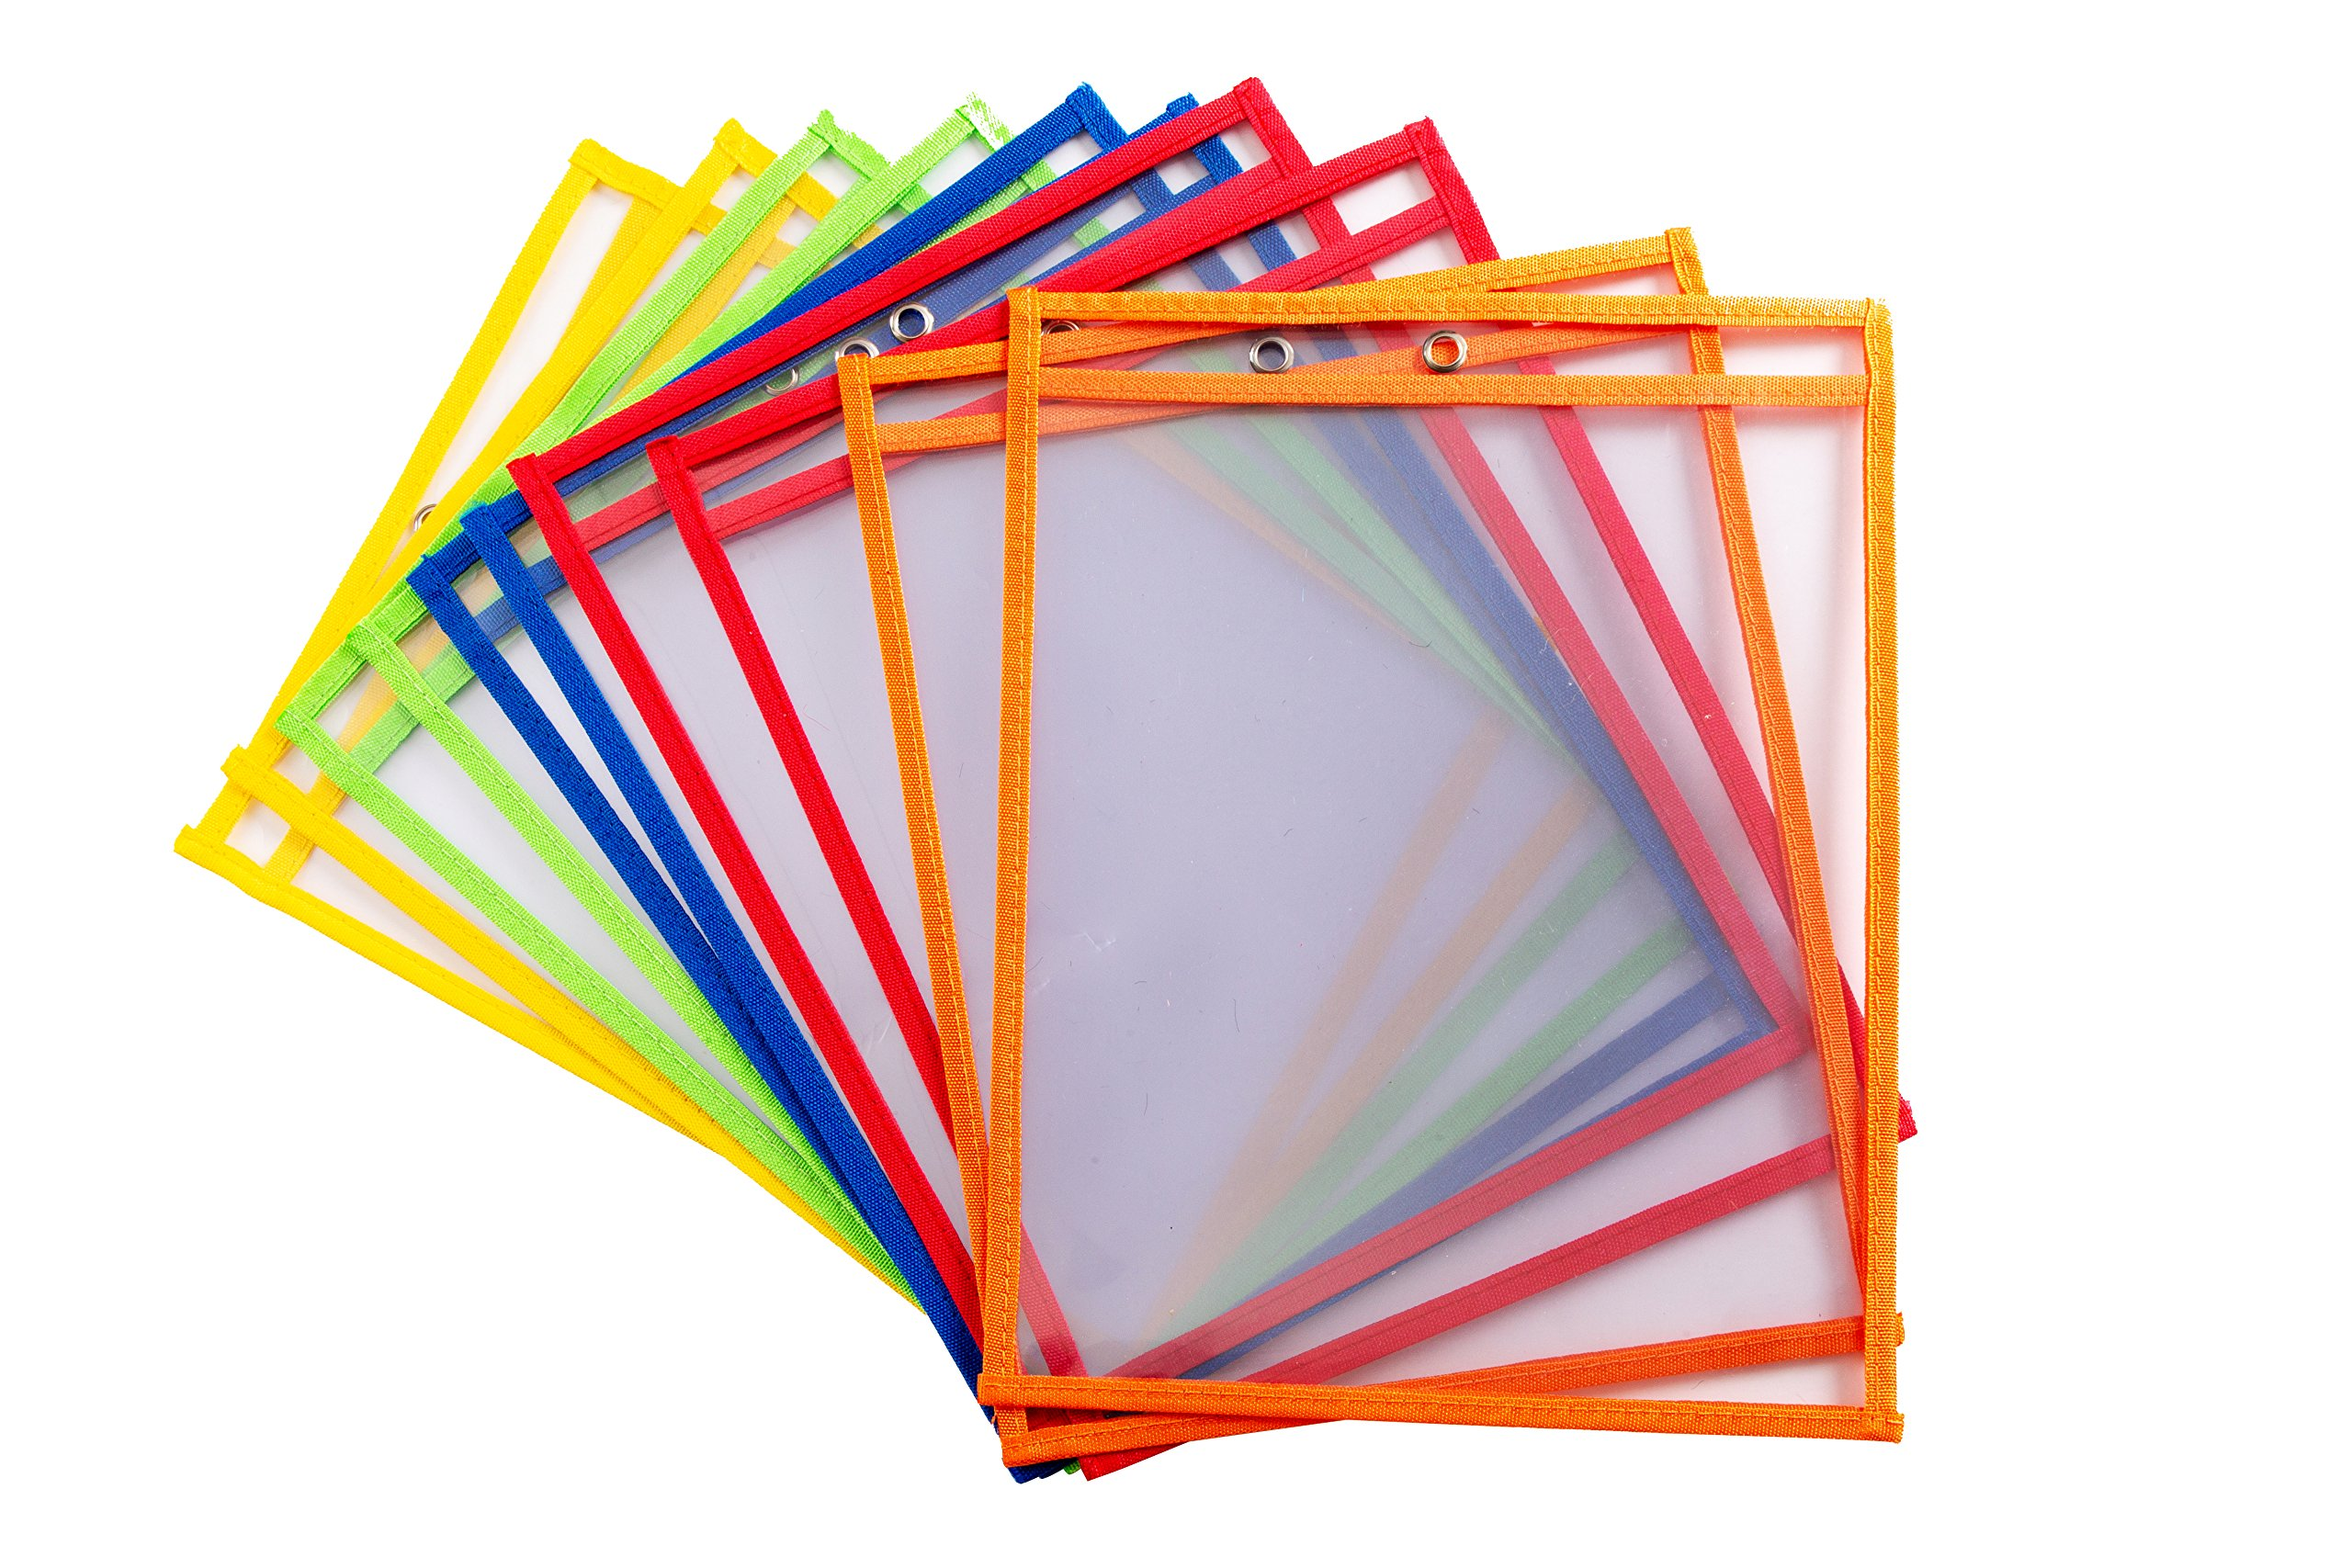 10 Dry Erase Pockets, Oversize 10'' x 13'' Pockets, Perfect for Classroom Organization, Reusable Dry Erase Pockets, Teaching Supplies, 10 PACK